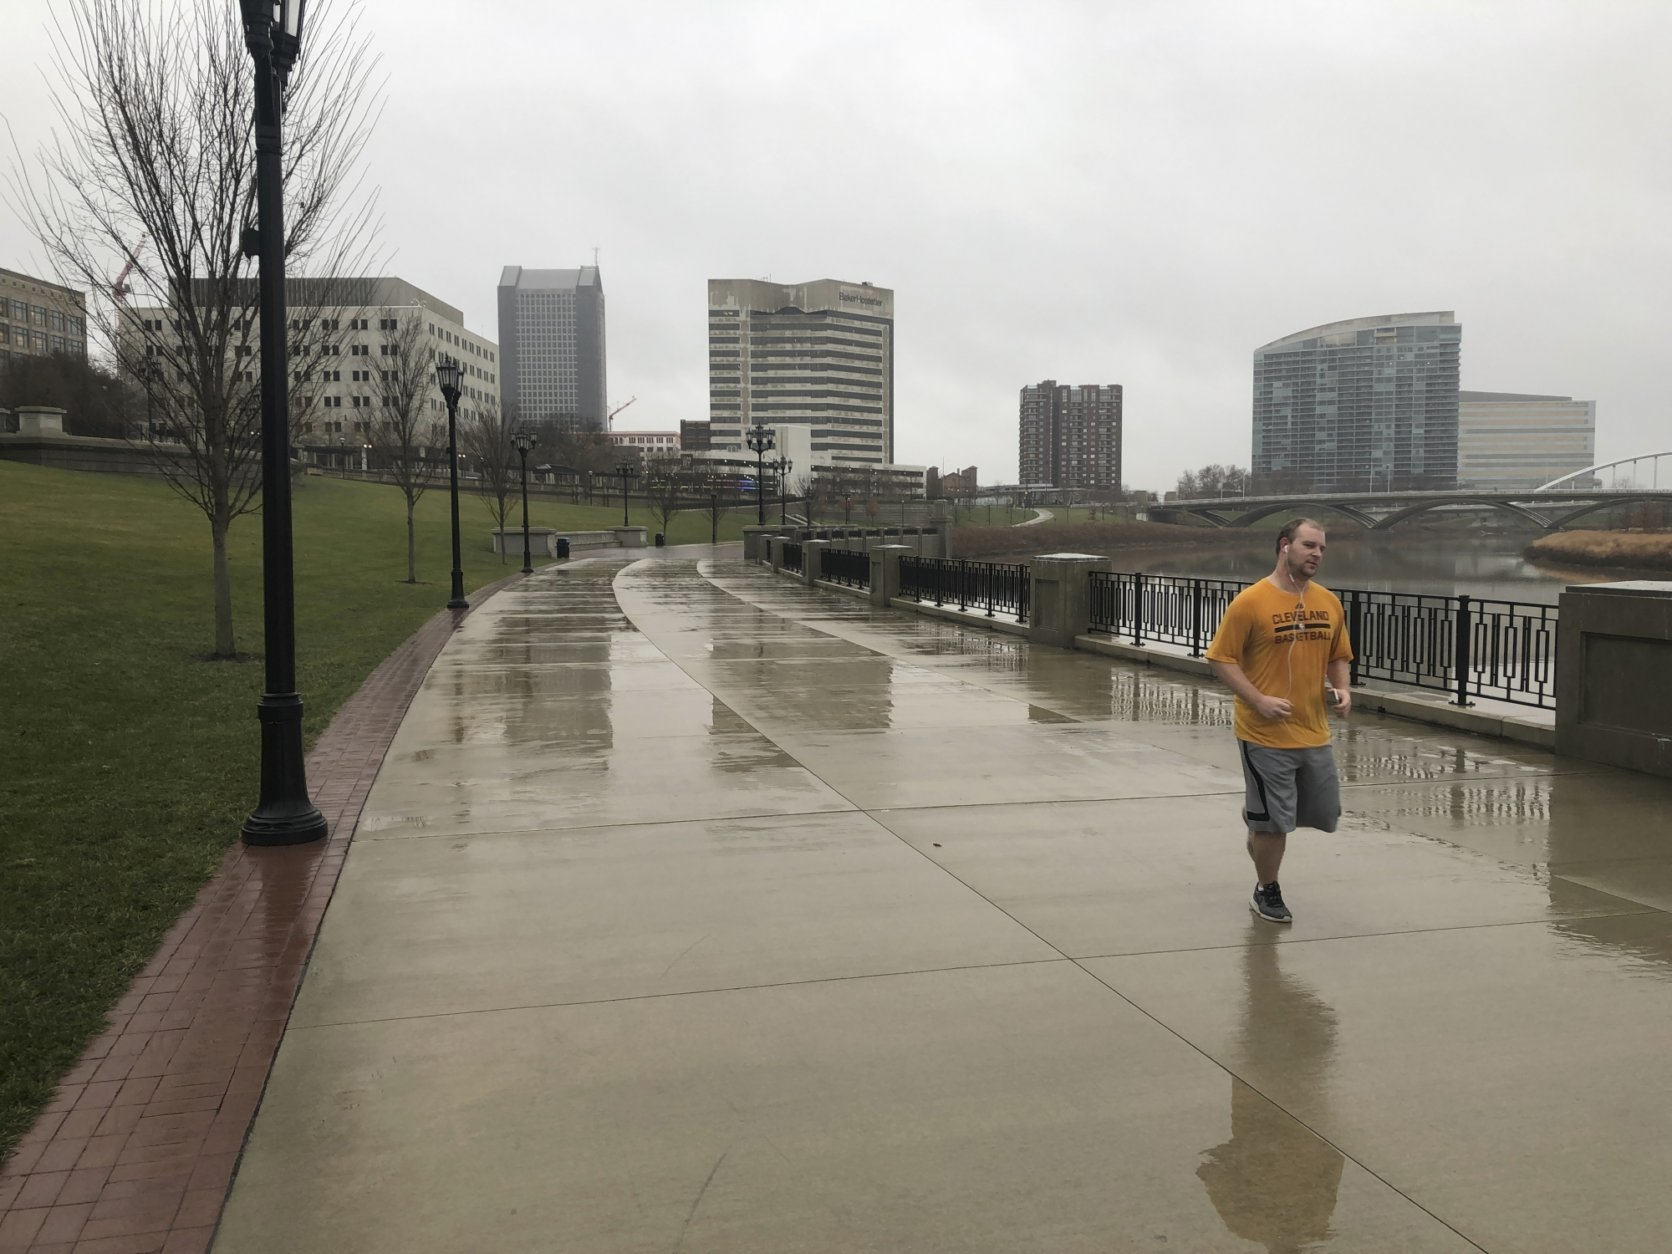 Evan Miller, 31, finishes up a 6 ½-mile run along the downtown Scioto River in mist and 53 degrees on Friday, Dec. 28, 2018, in Columbus, Ohio. In contrast to other parts of the country, Ohio saw unusually mild temperatures Friday with readings in the 50s for many cities. (AP Photo/Andrew Welsh-Huggins)